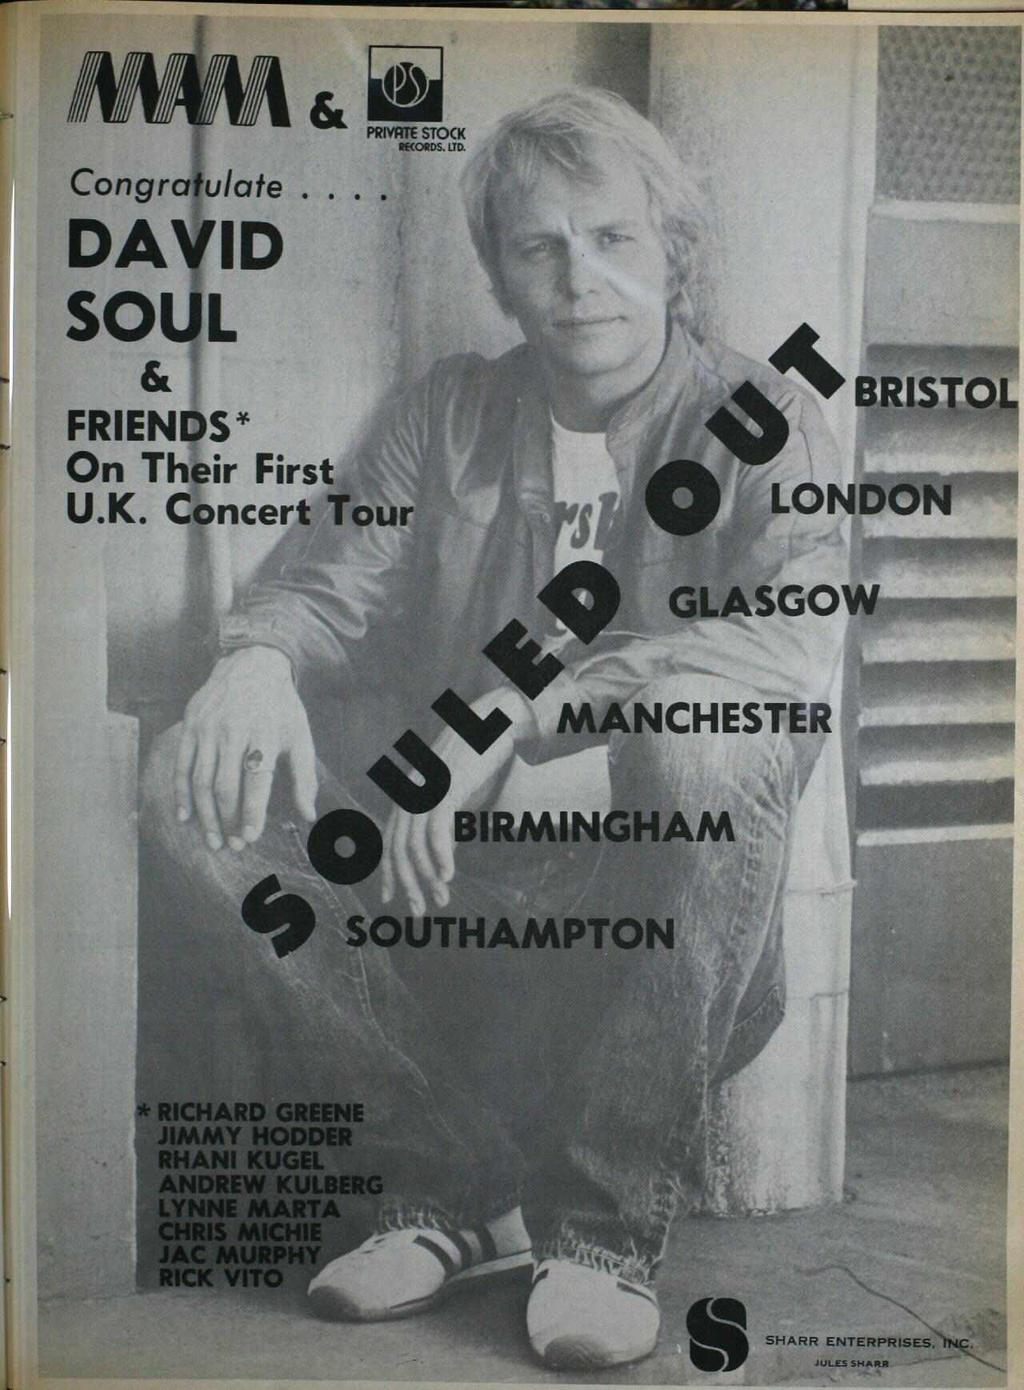 PRIVATE STOCK WOODS. LTD, Congratulate. DAVID SOUL s 44Ik BRISTOL FRIENDS' On Their First U.K. Concert Tour rii00 LONDON GLASGOW MANCHESTER BIRMINGHAM V6.